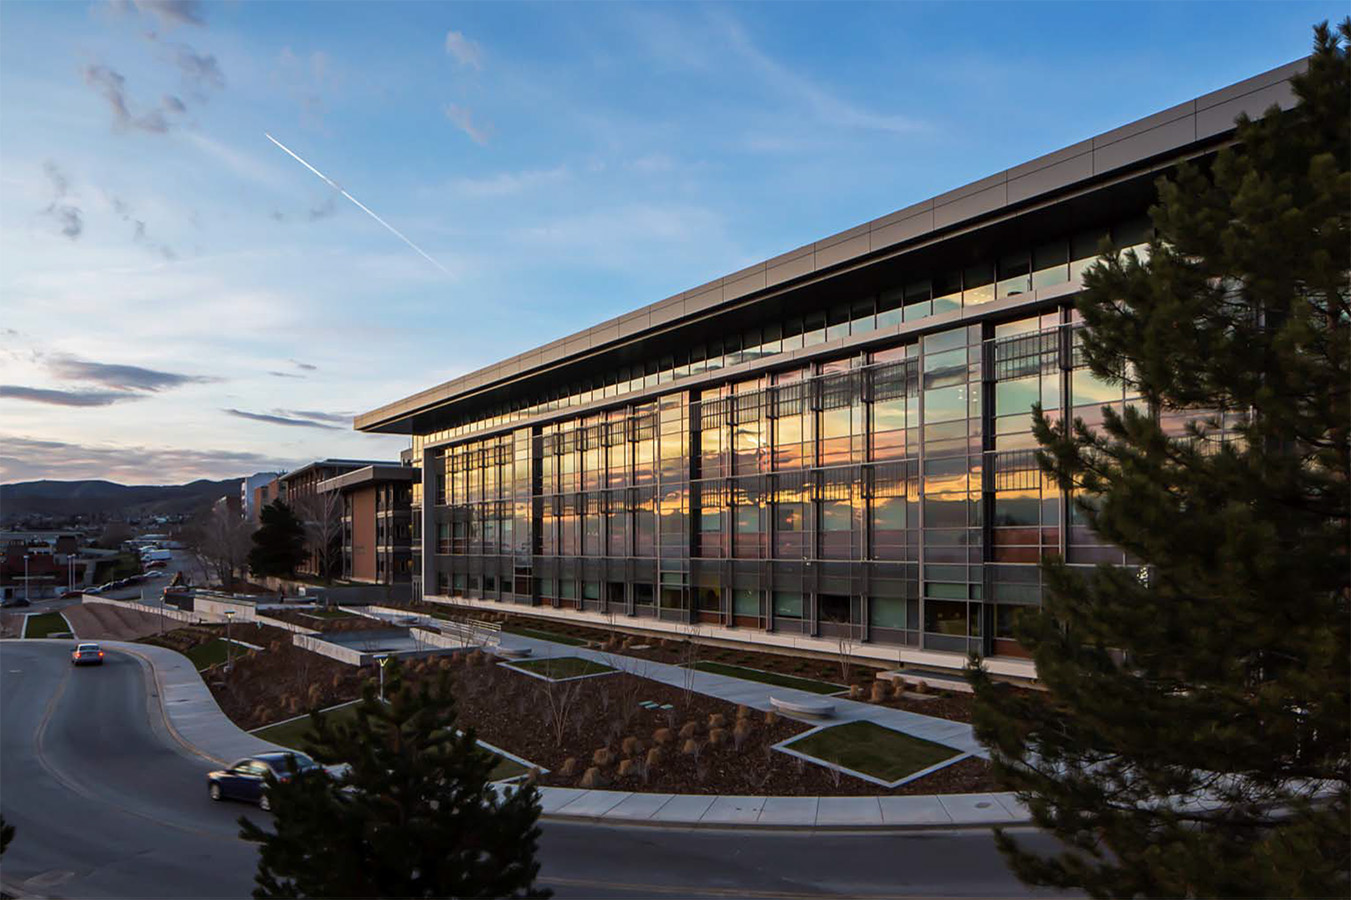 The final façade of L.S. Skaggs Pharmacy Research Institute, reflecting the local landscape